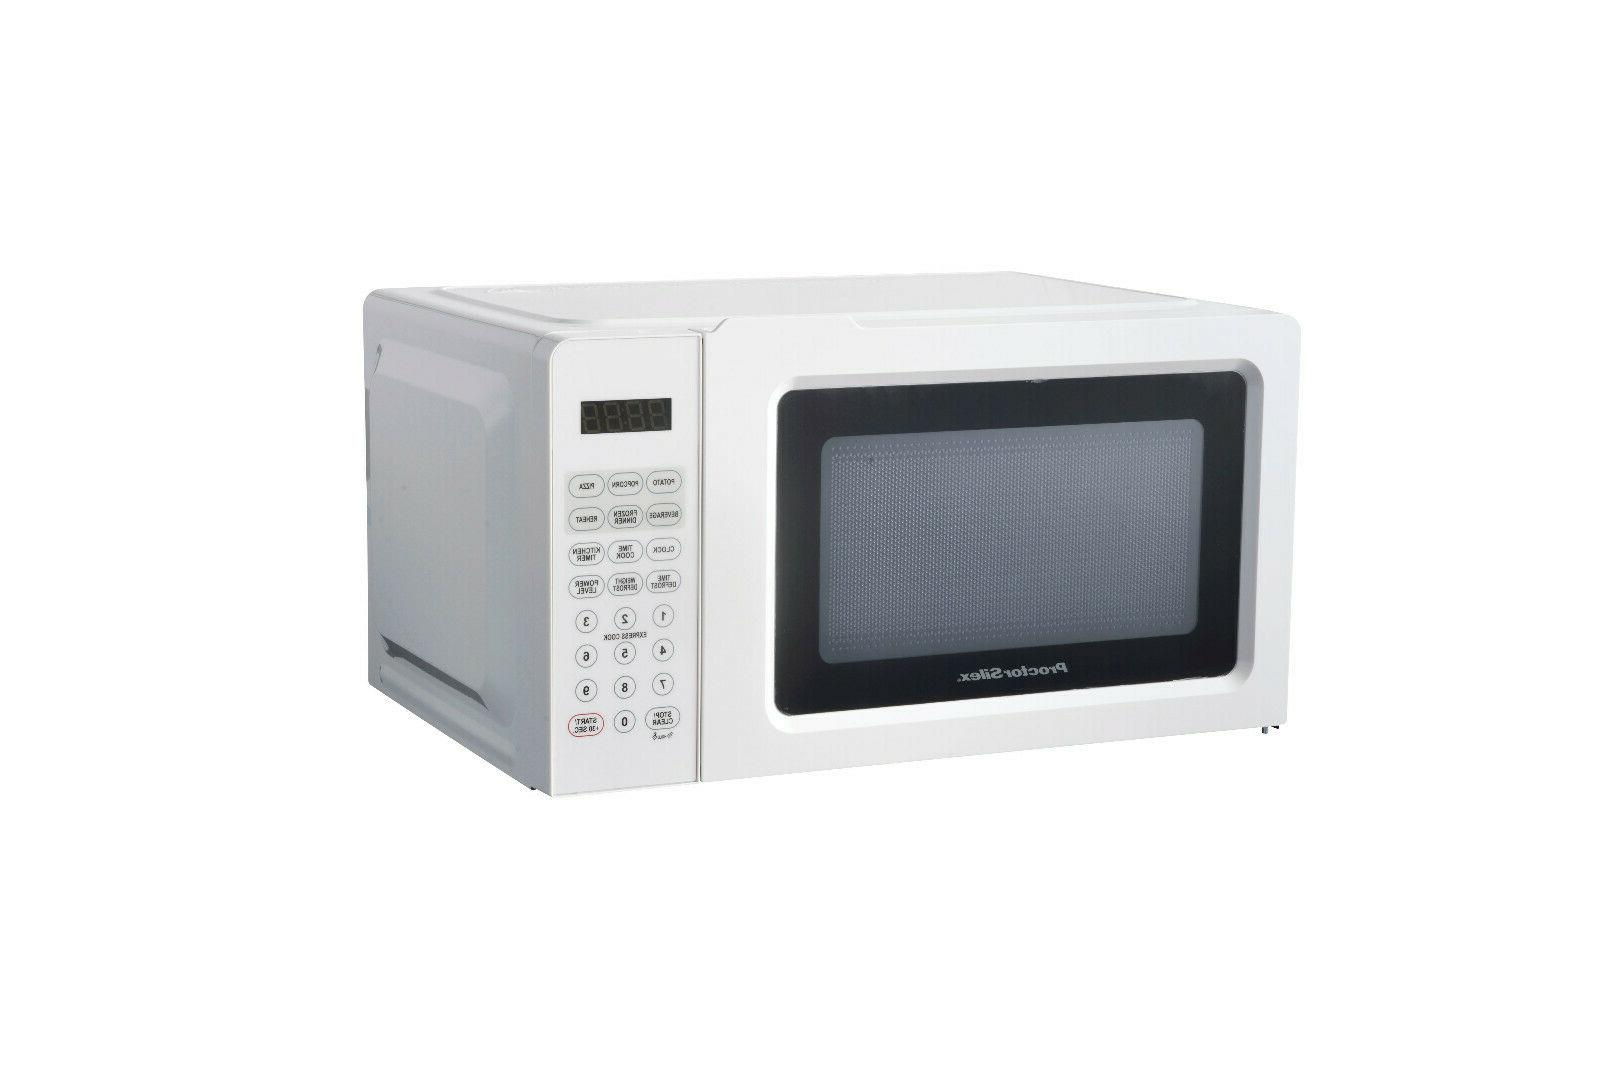 Digital Kitchen Microwave Oven Home Office Small